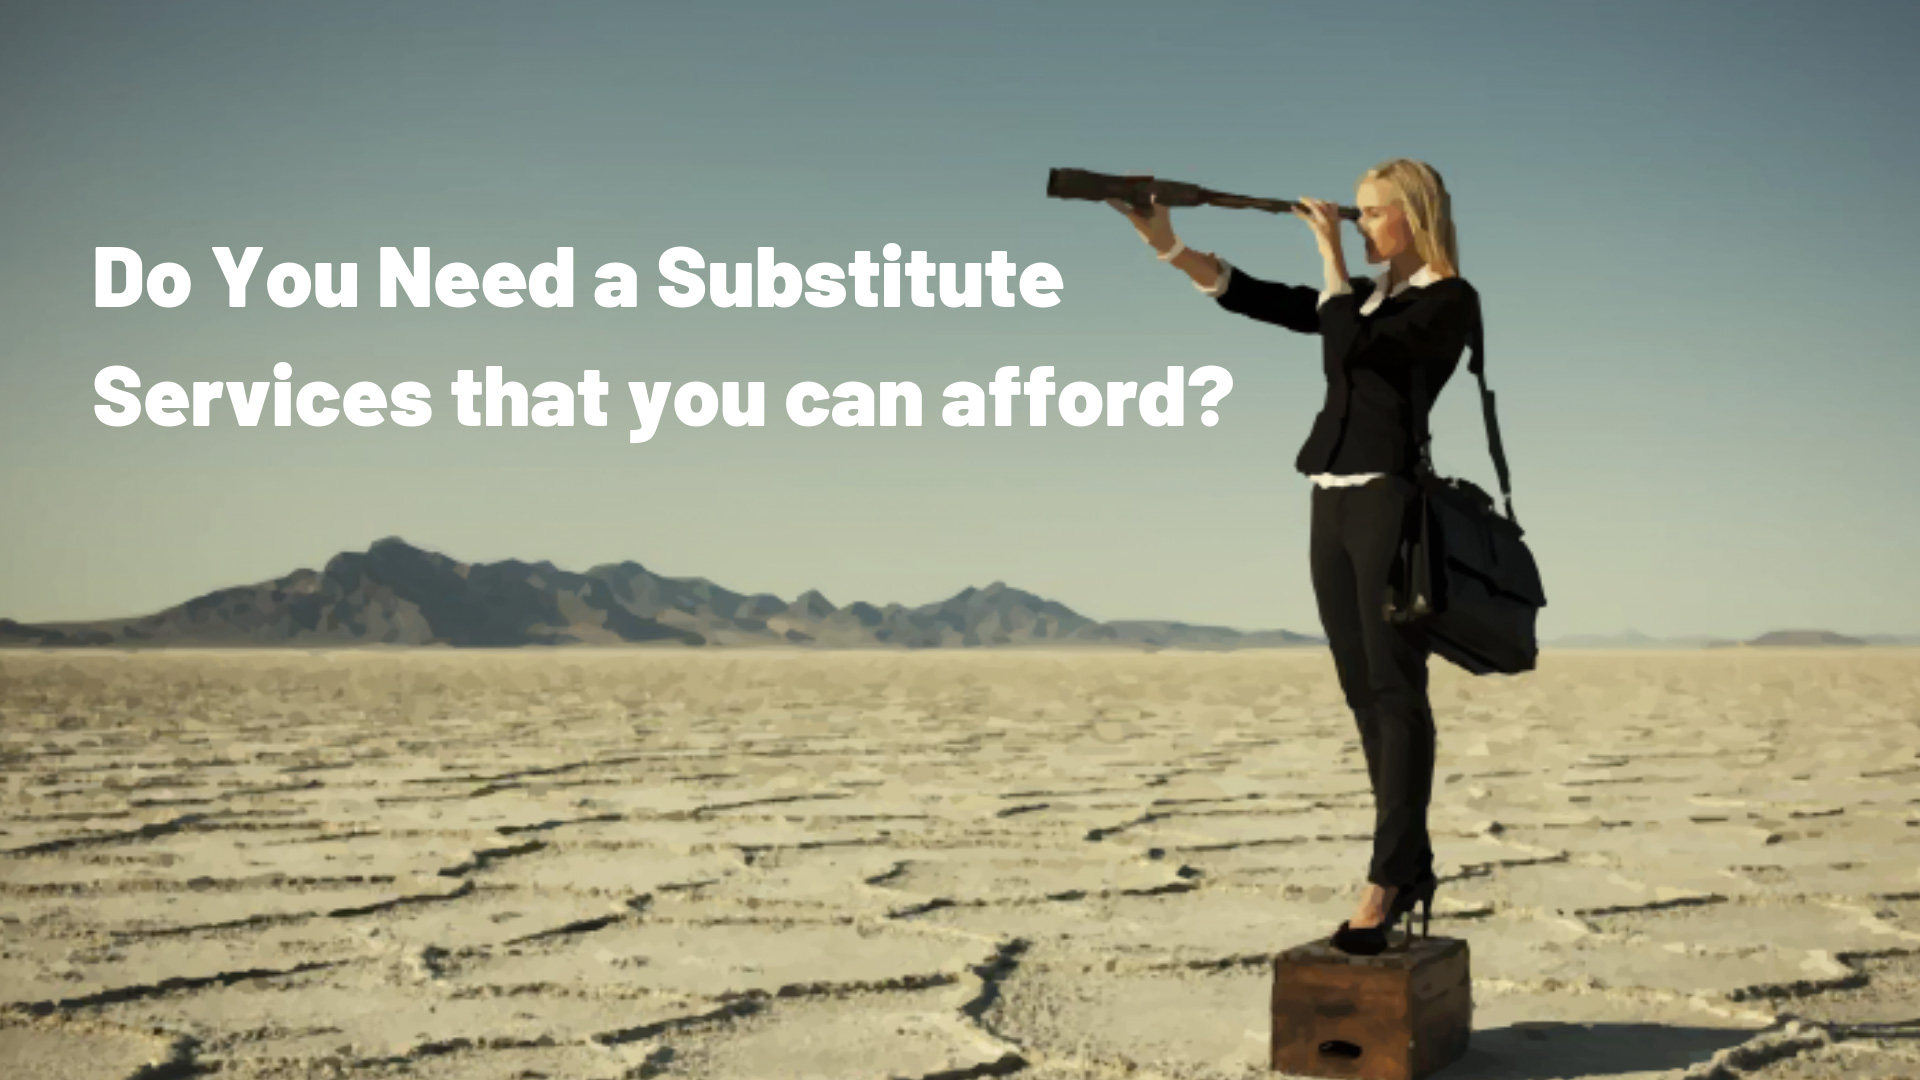 Substitute Services Information Meeting